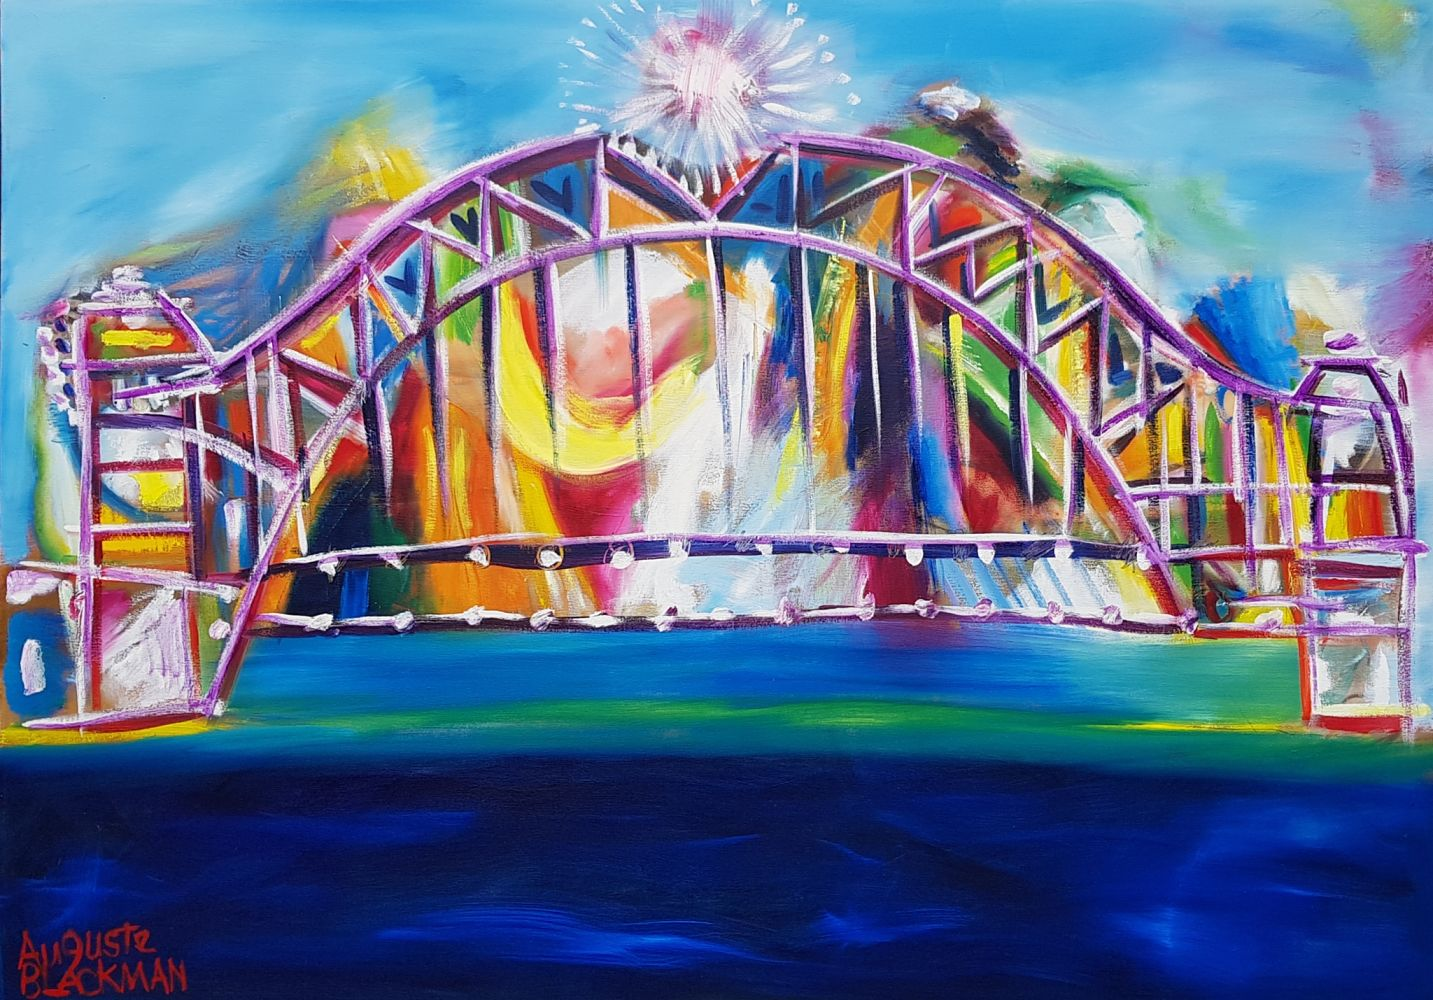 Auguste Blackman 'Big Bridge'